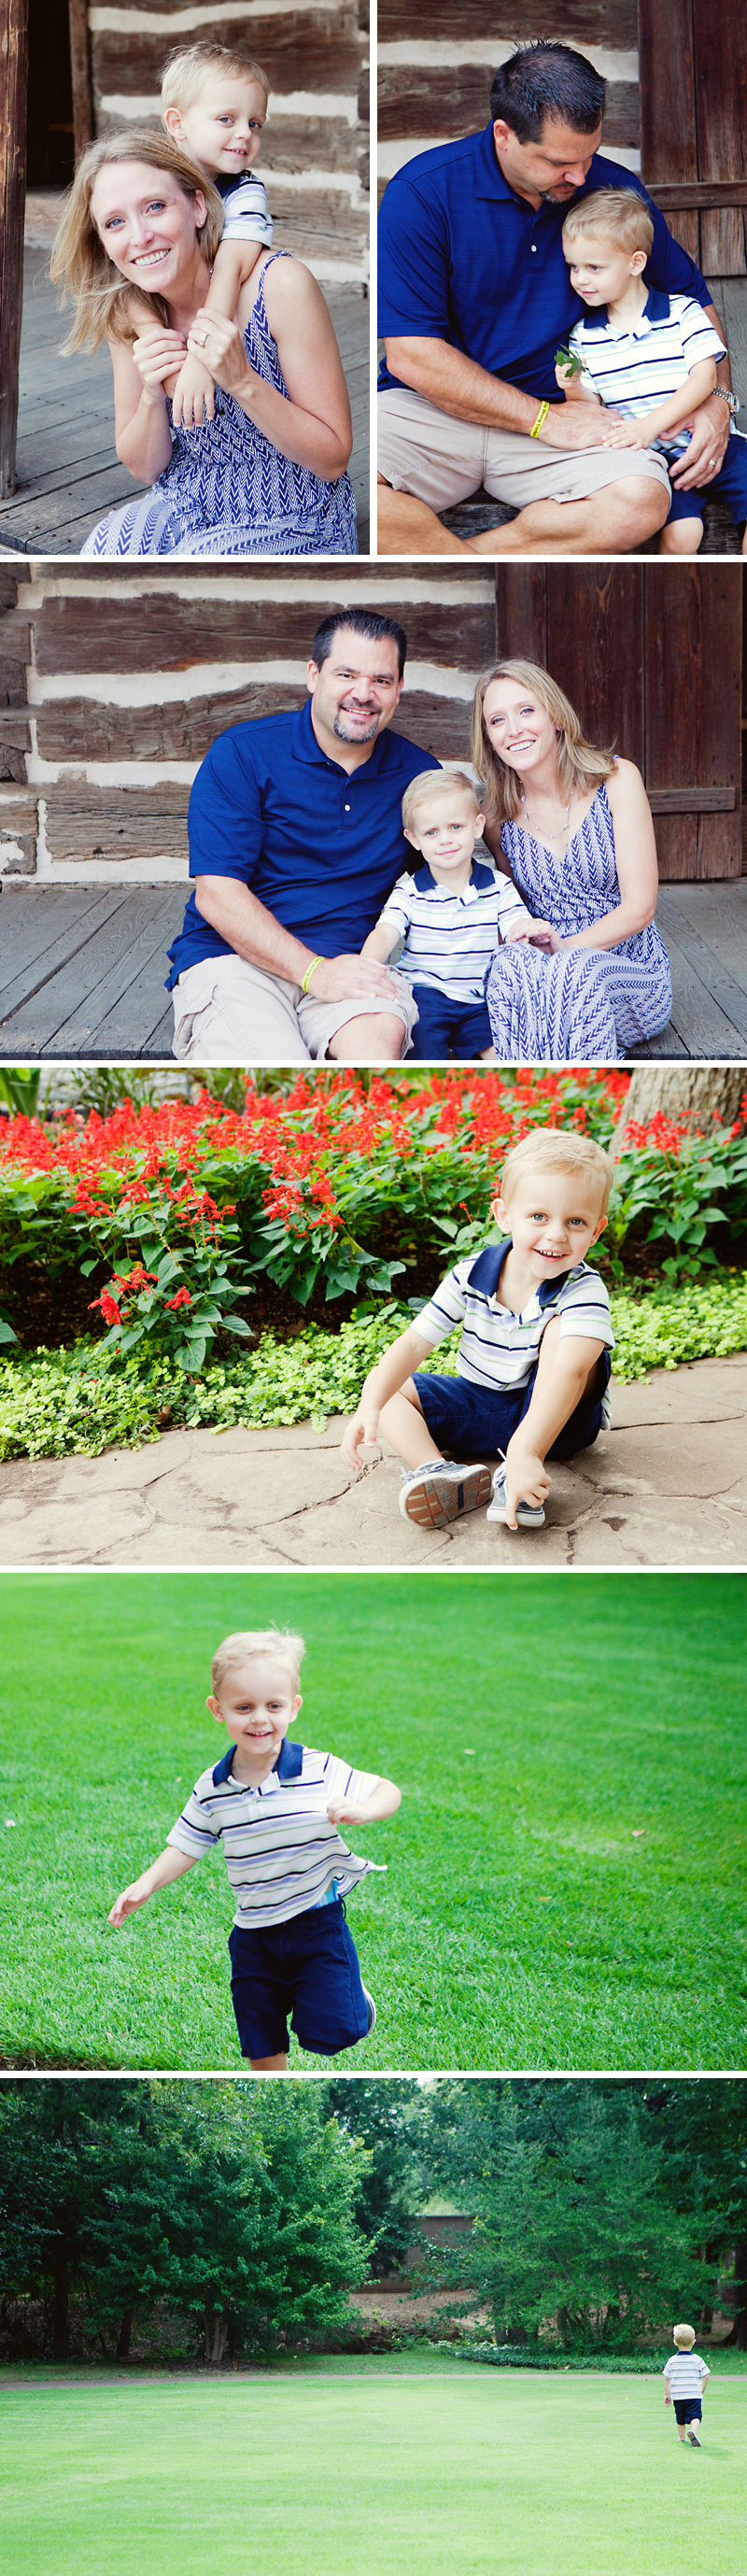 Dallas-Family-Photographerc005